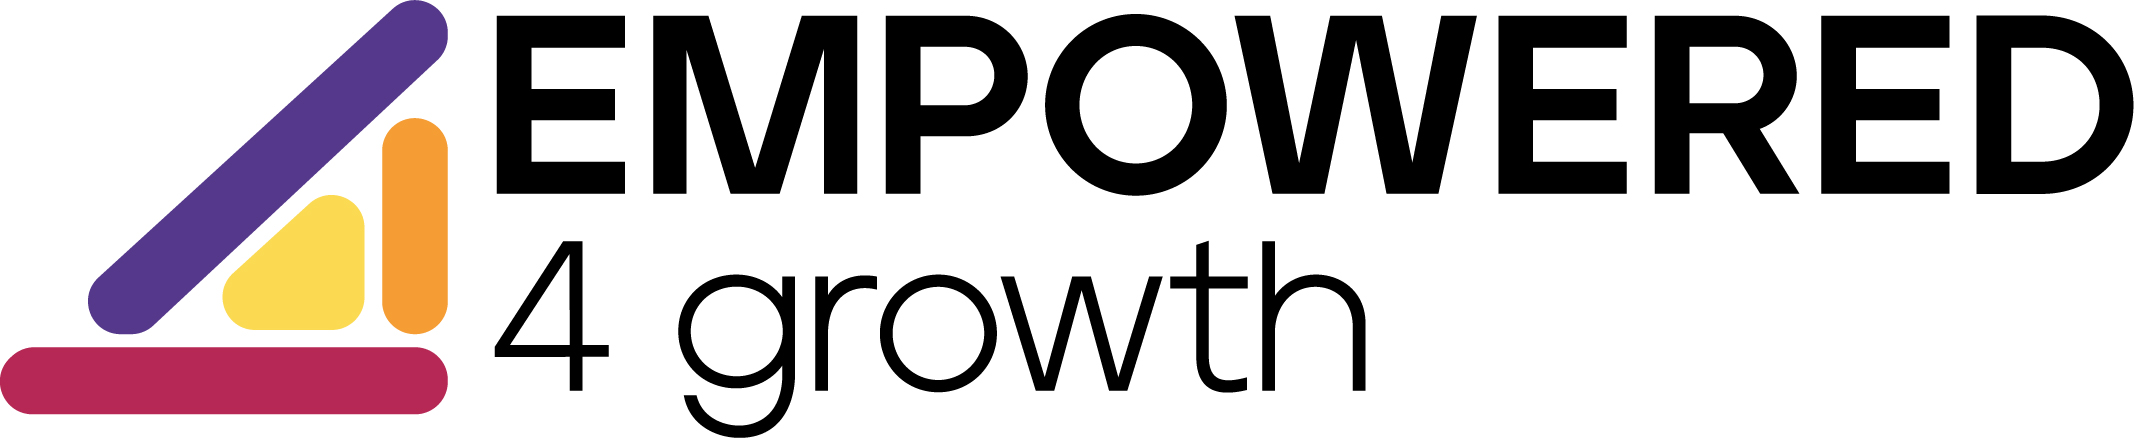 Empowered 4 Growth